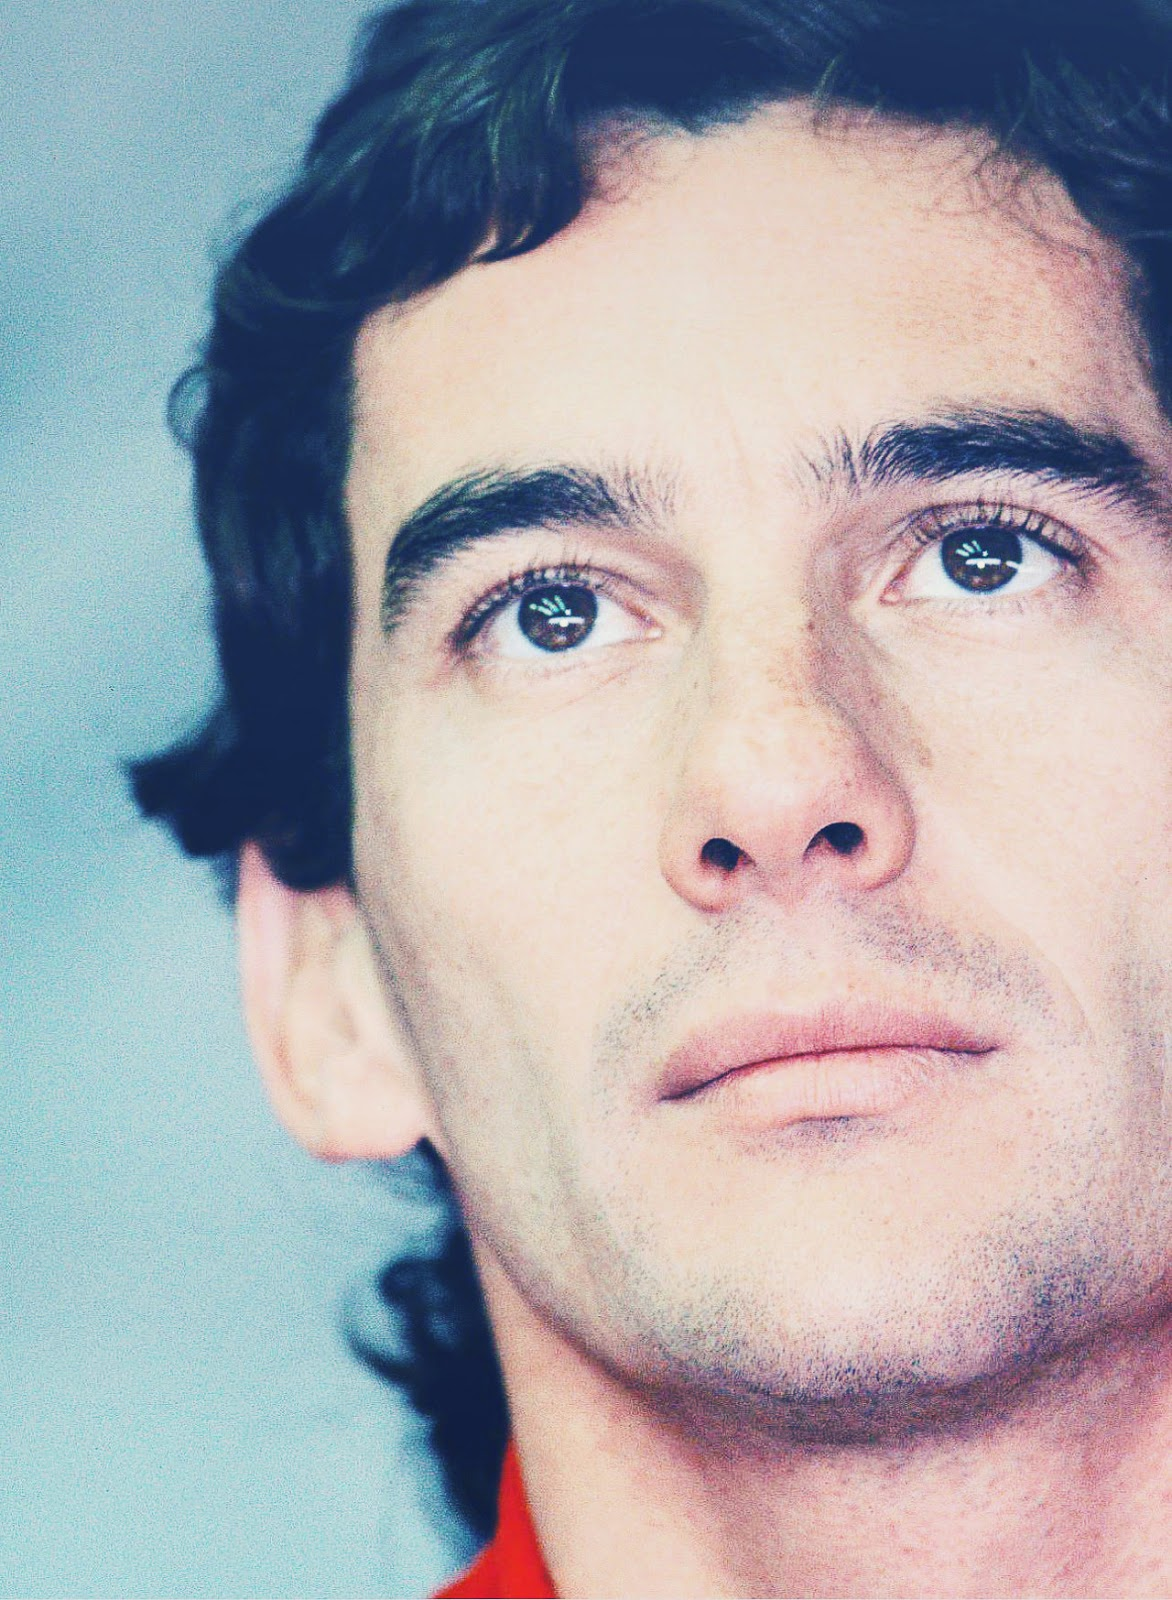 ayrton senna forever ayrton 39 s physical appearance was so unlike any other human 39 s. Black Bedroom Furniture Sets. Home Design Ideas